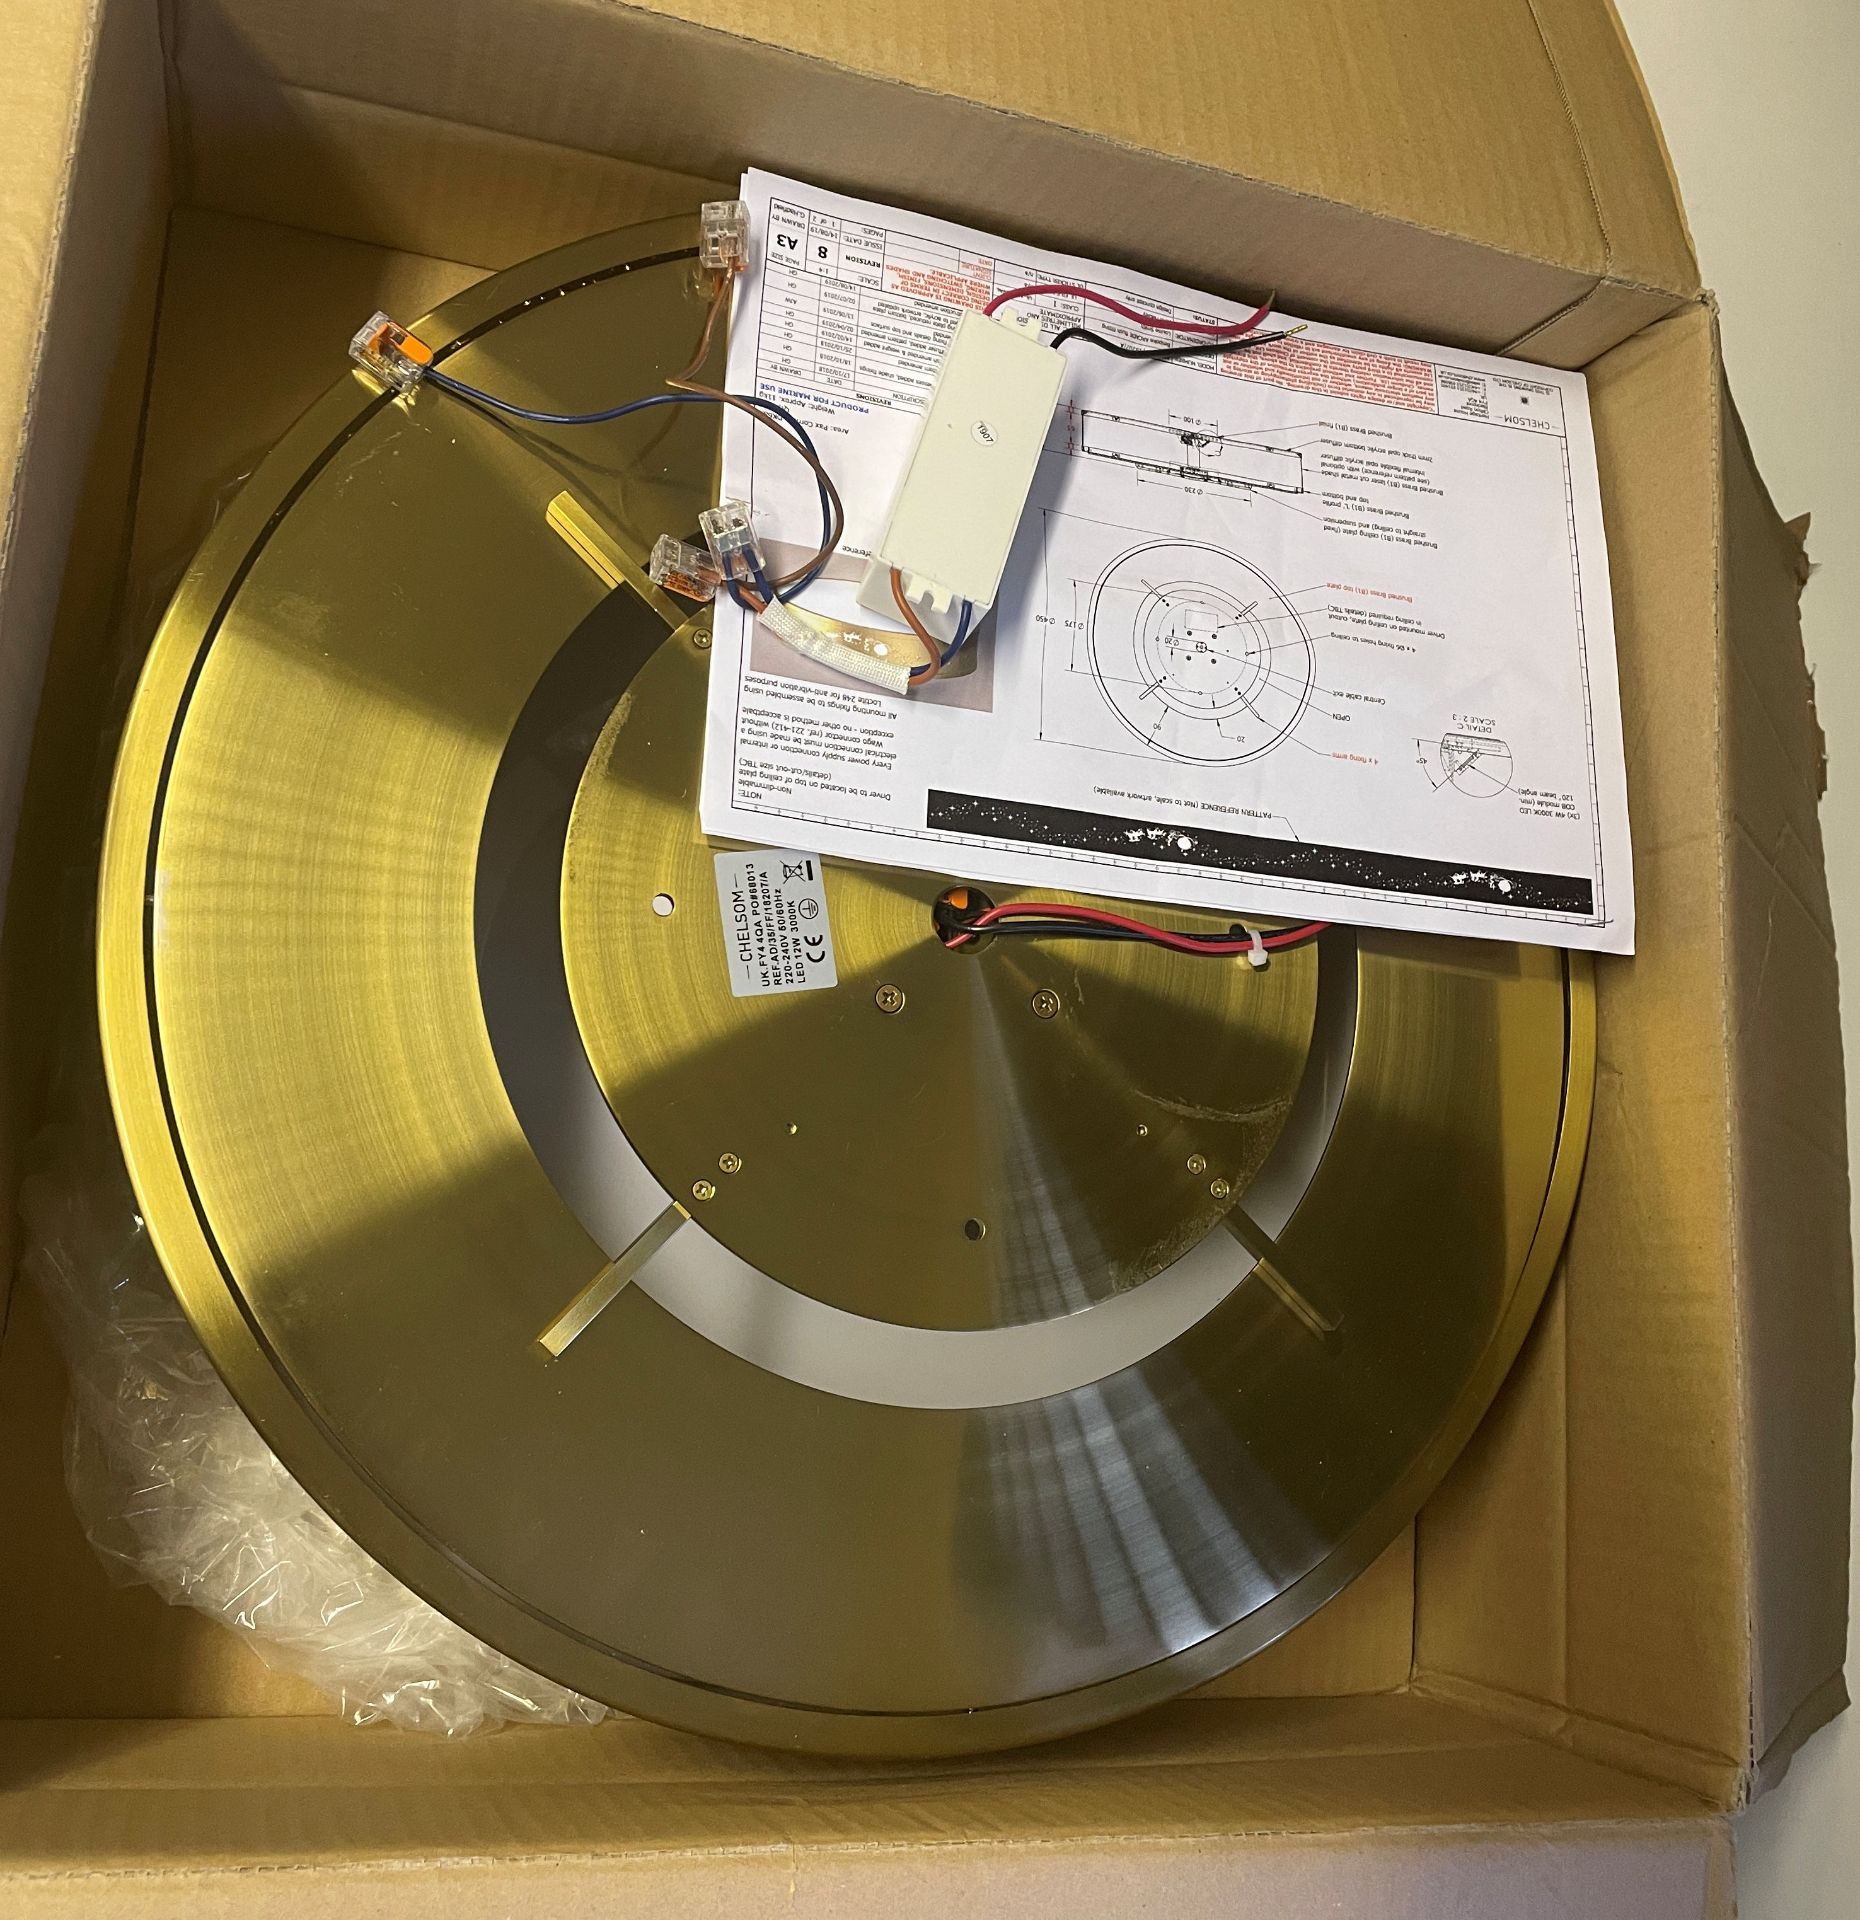 1 x Chelsom 'Disney' New Build Brushed Brass Ceiling Arcade Pendent Light Fitting - Sample we under - Image 8 of 14